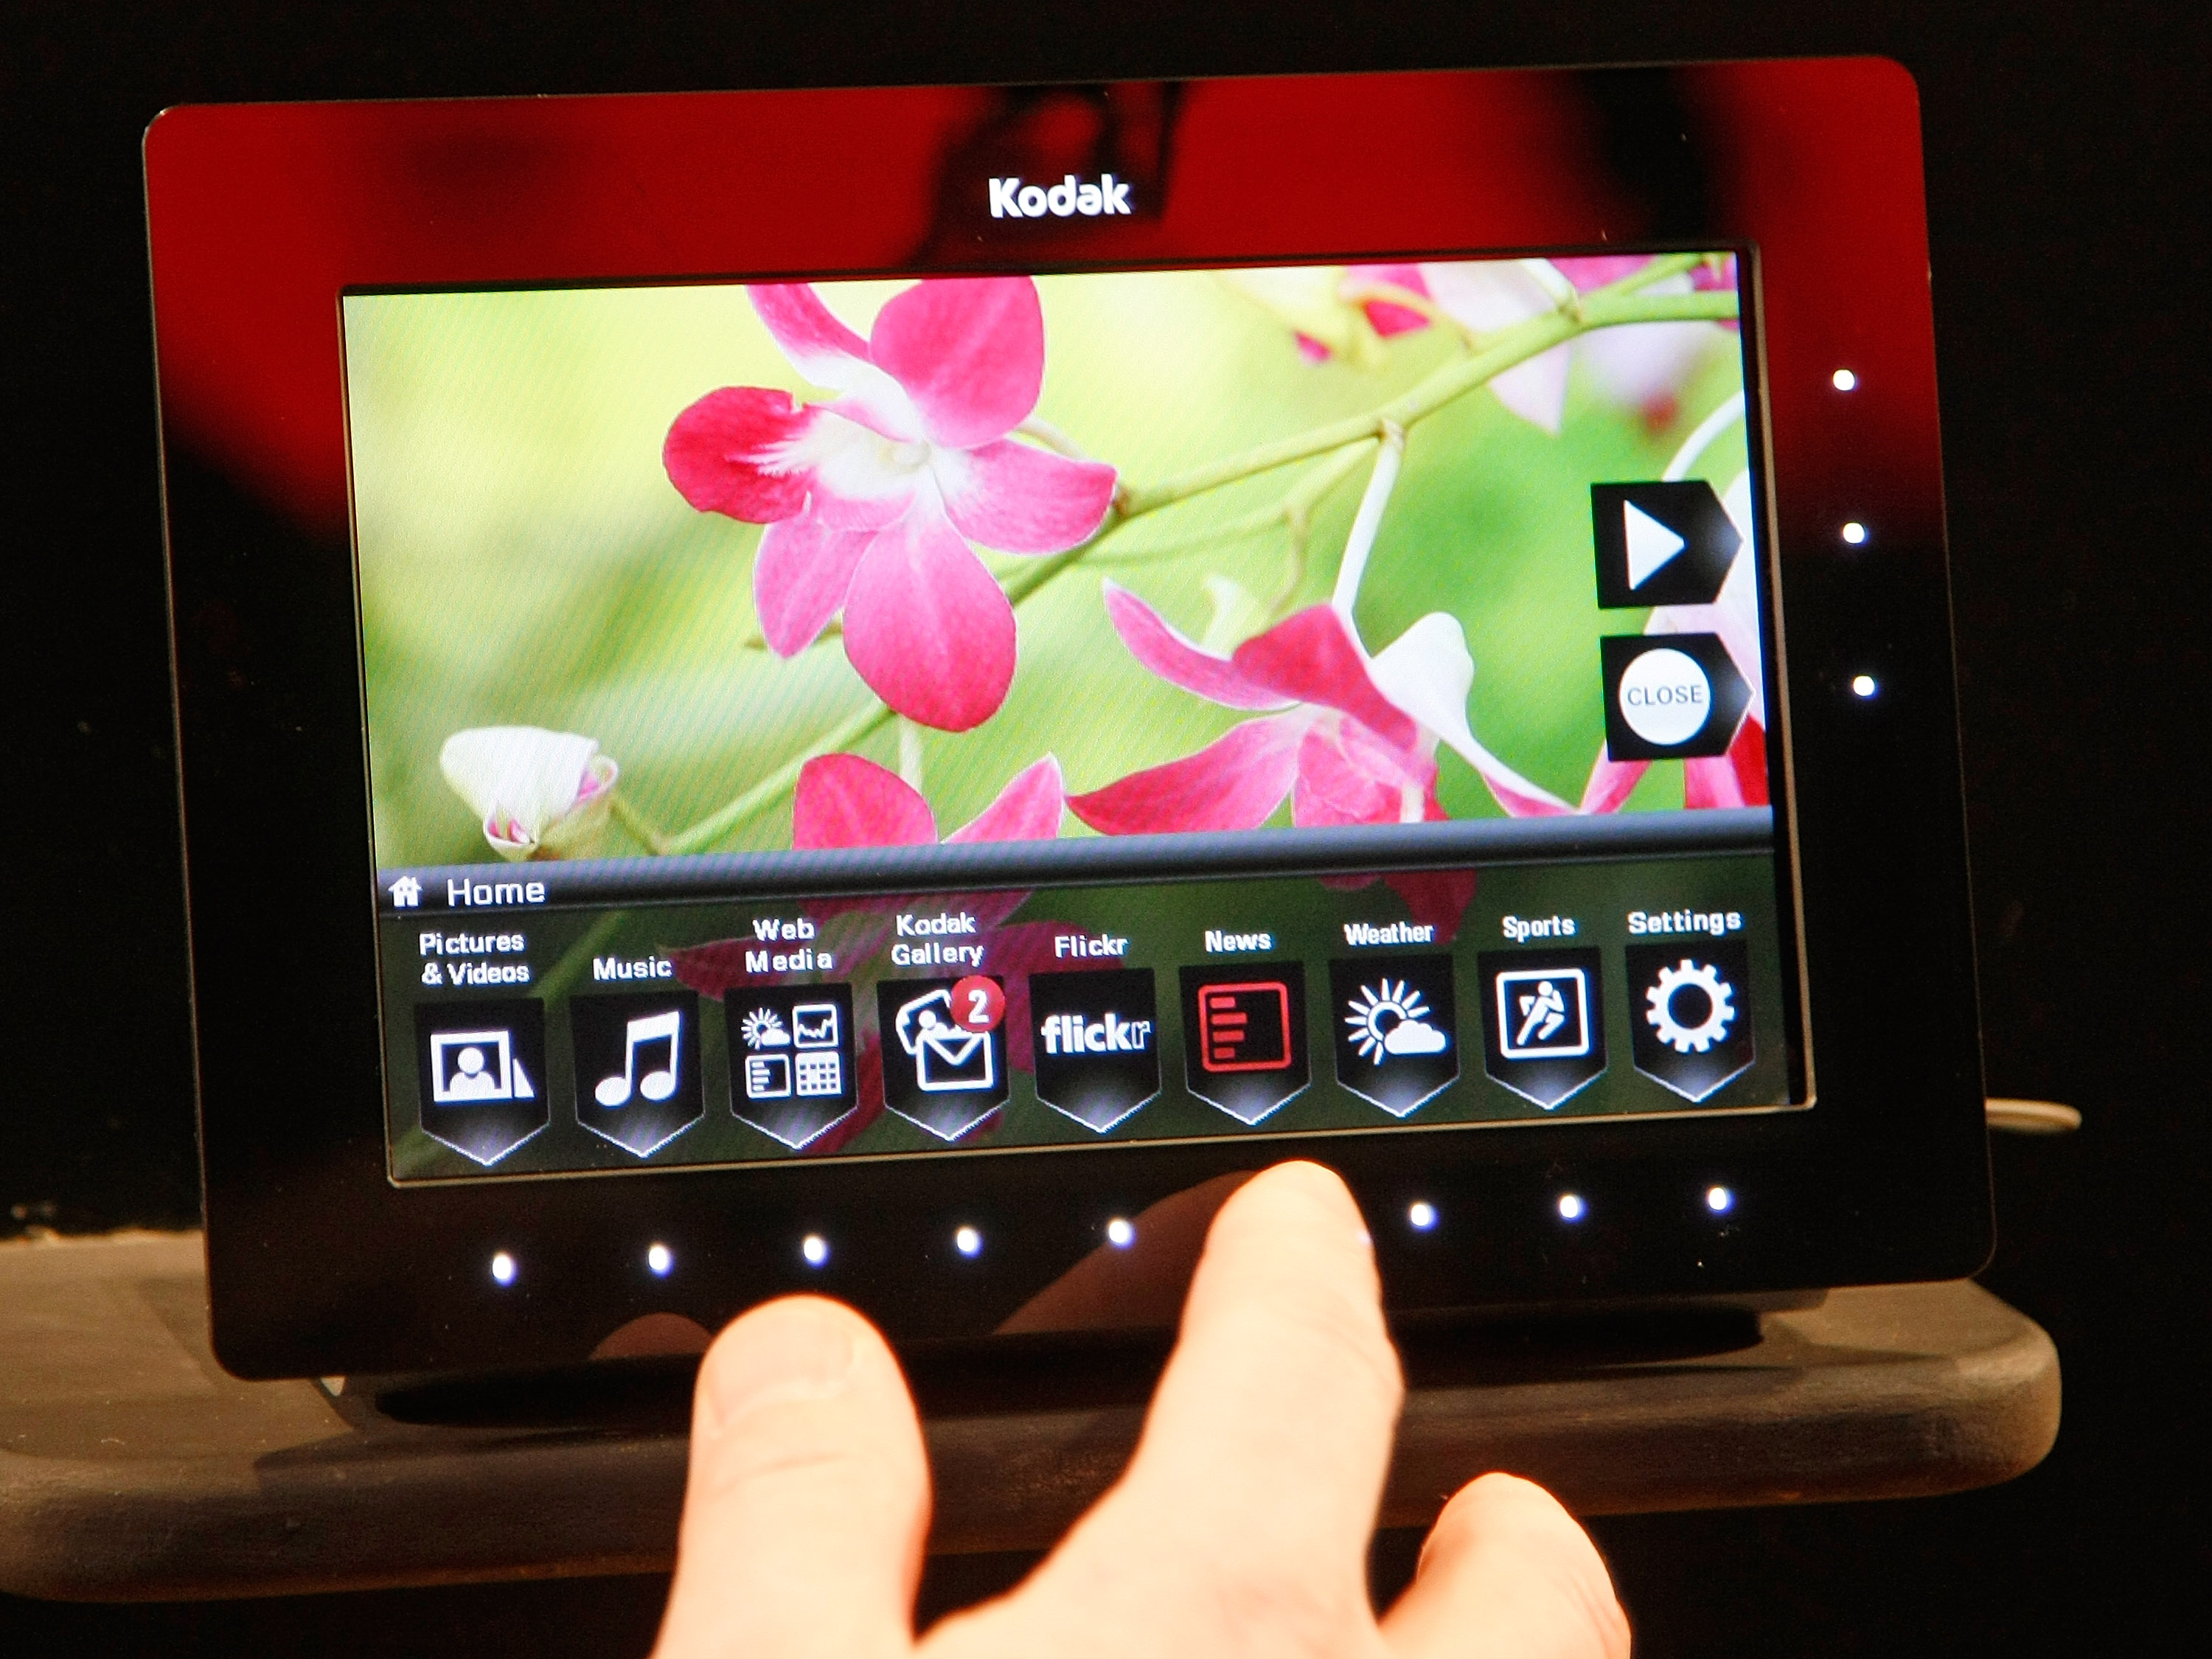 Kodak's work on OLED technology didn't manifest into many consumer-grade products. Here, Kodak shows off an OLED digital photo frame at CES 2009, months before selling its OLED R&D portfolio to LG.